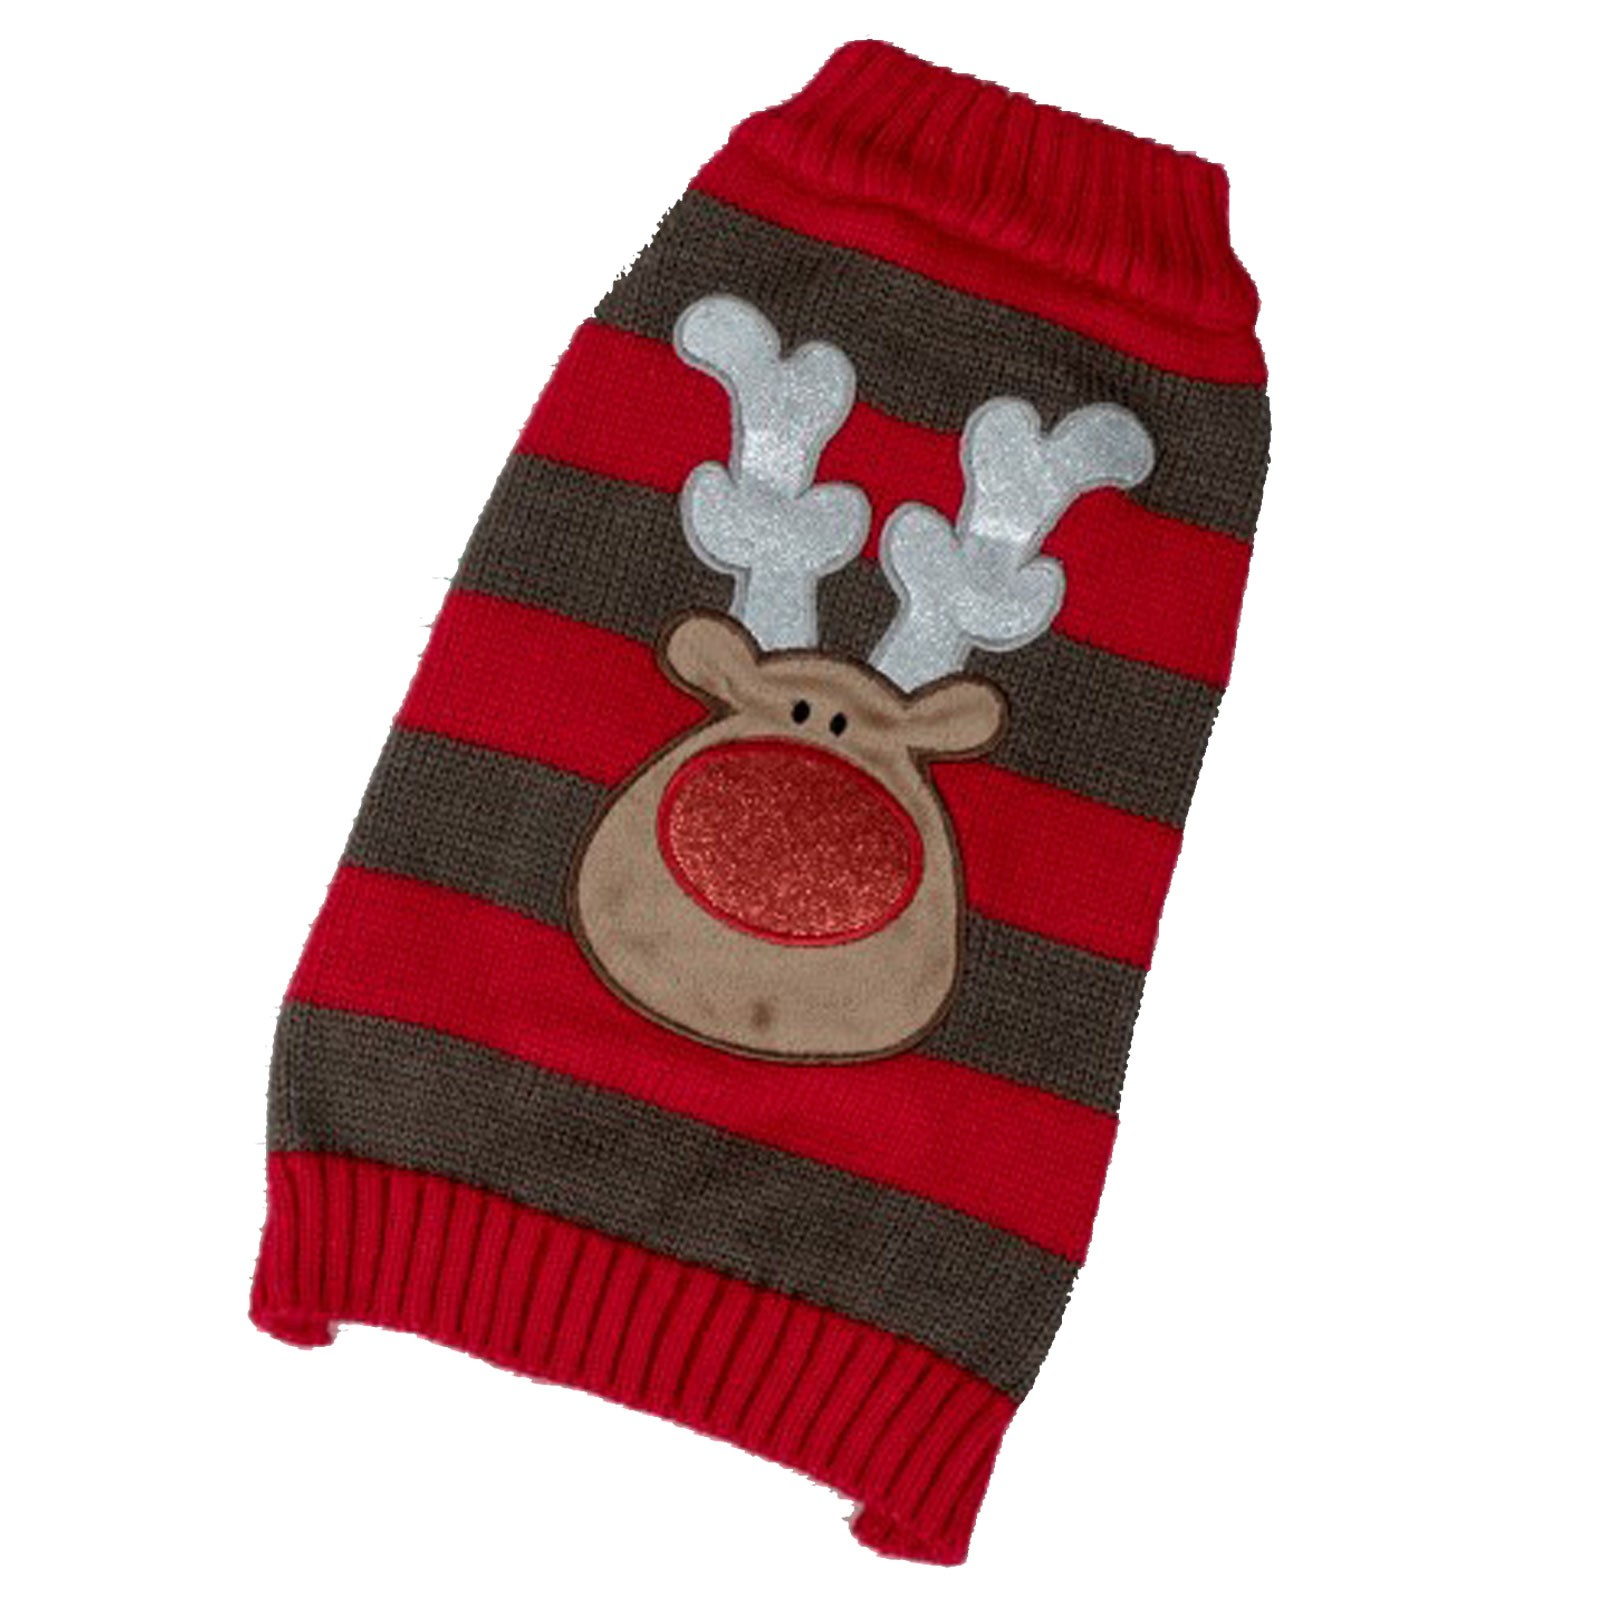 PETFACE 80204 DOG SWEATER SMALL 30CM RED/BROWN STRIPE REINDEER PRINT NEW